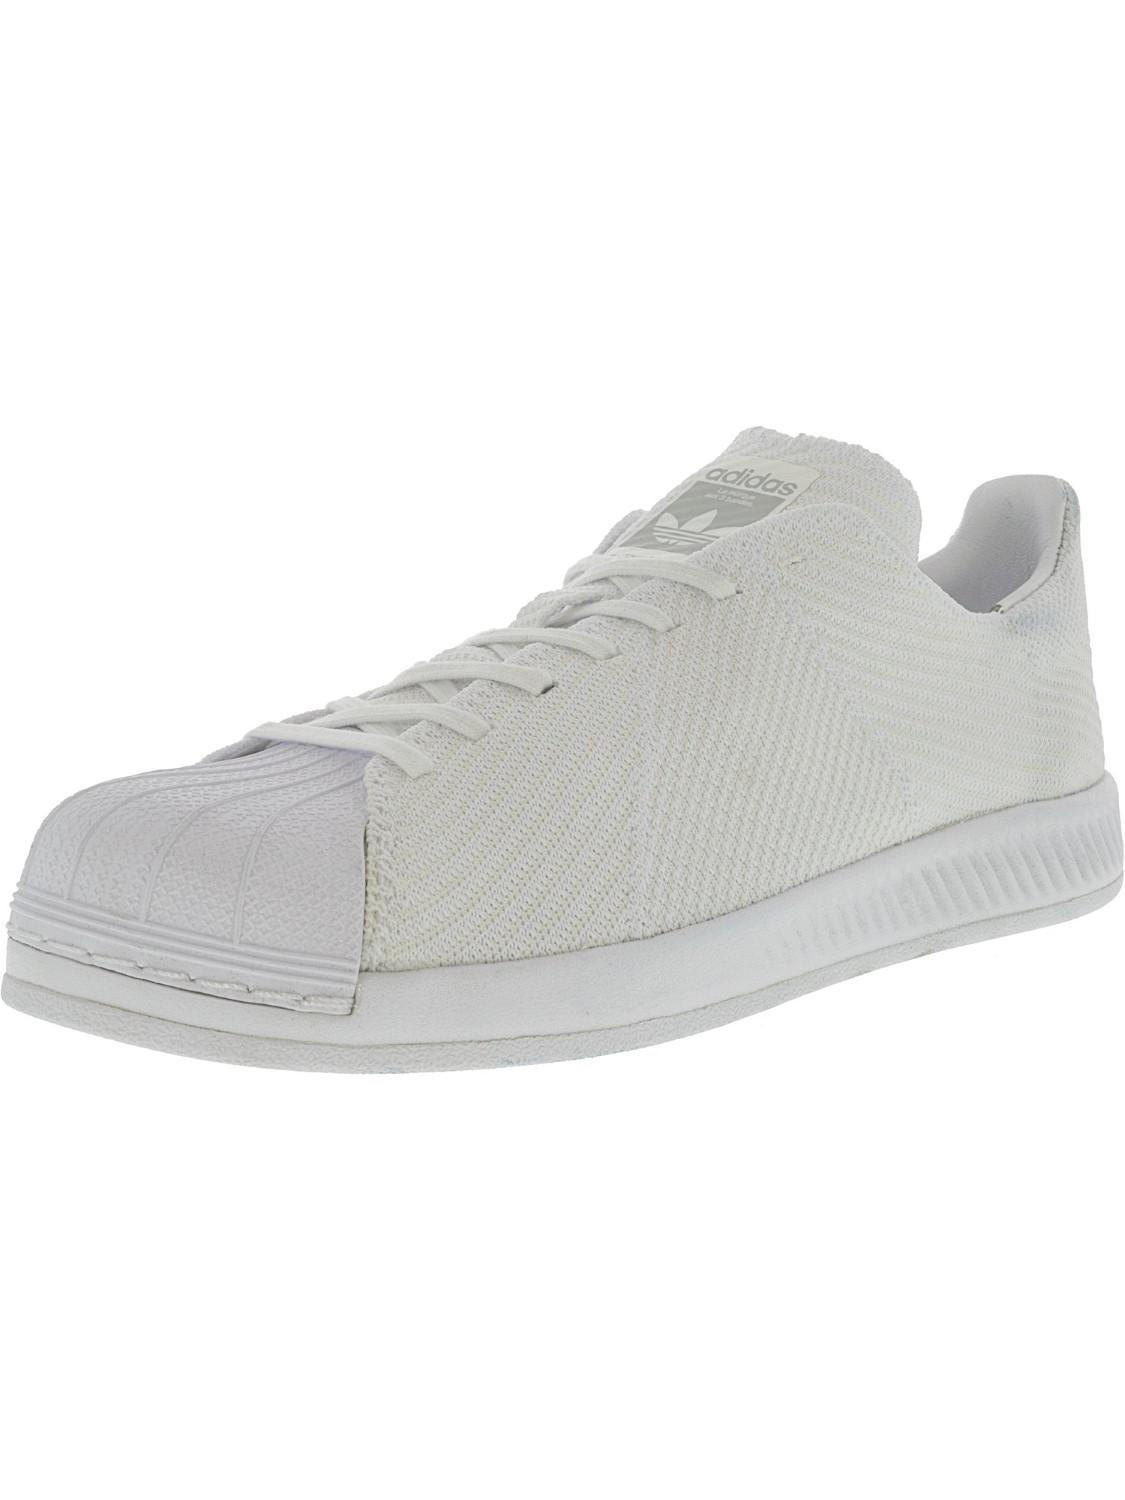 Lyst - adidas Superstar Bounce Pk Footwear White   Ankle-high ... 21848314e